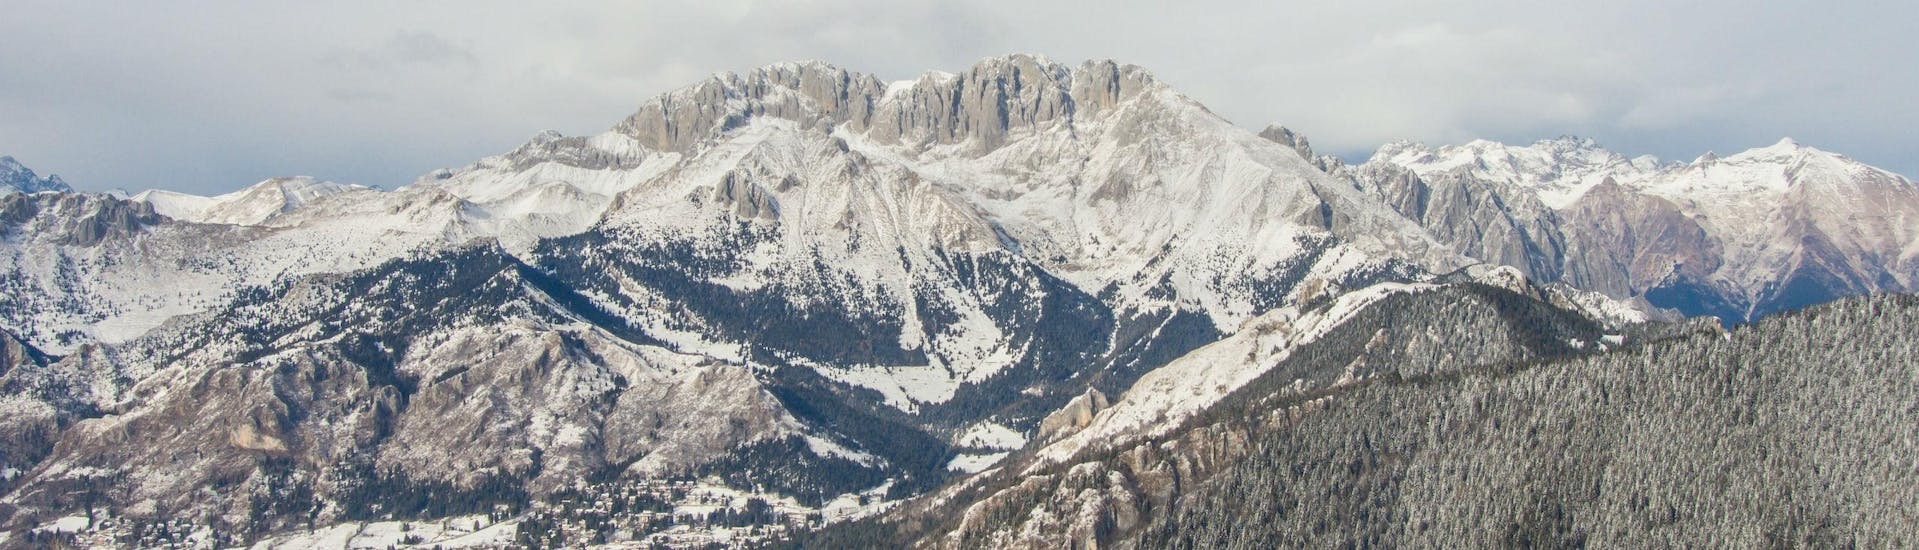 A view of the snow-capped mountains of Monte Pora in Italy, where local ski schools offer several types of ski lessons.